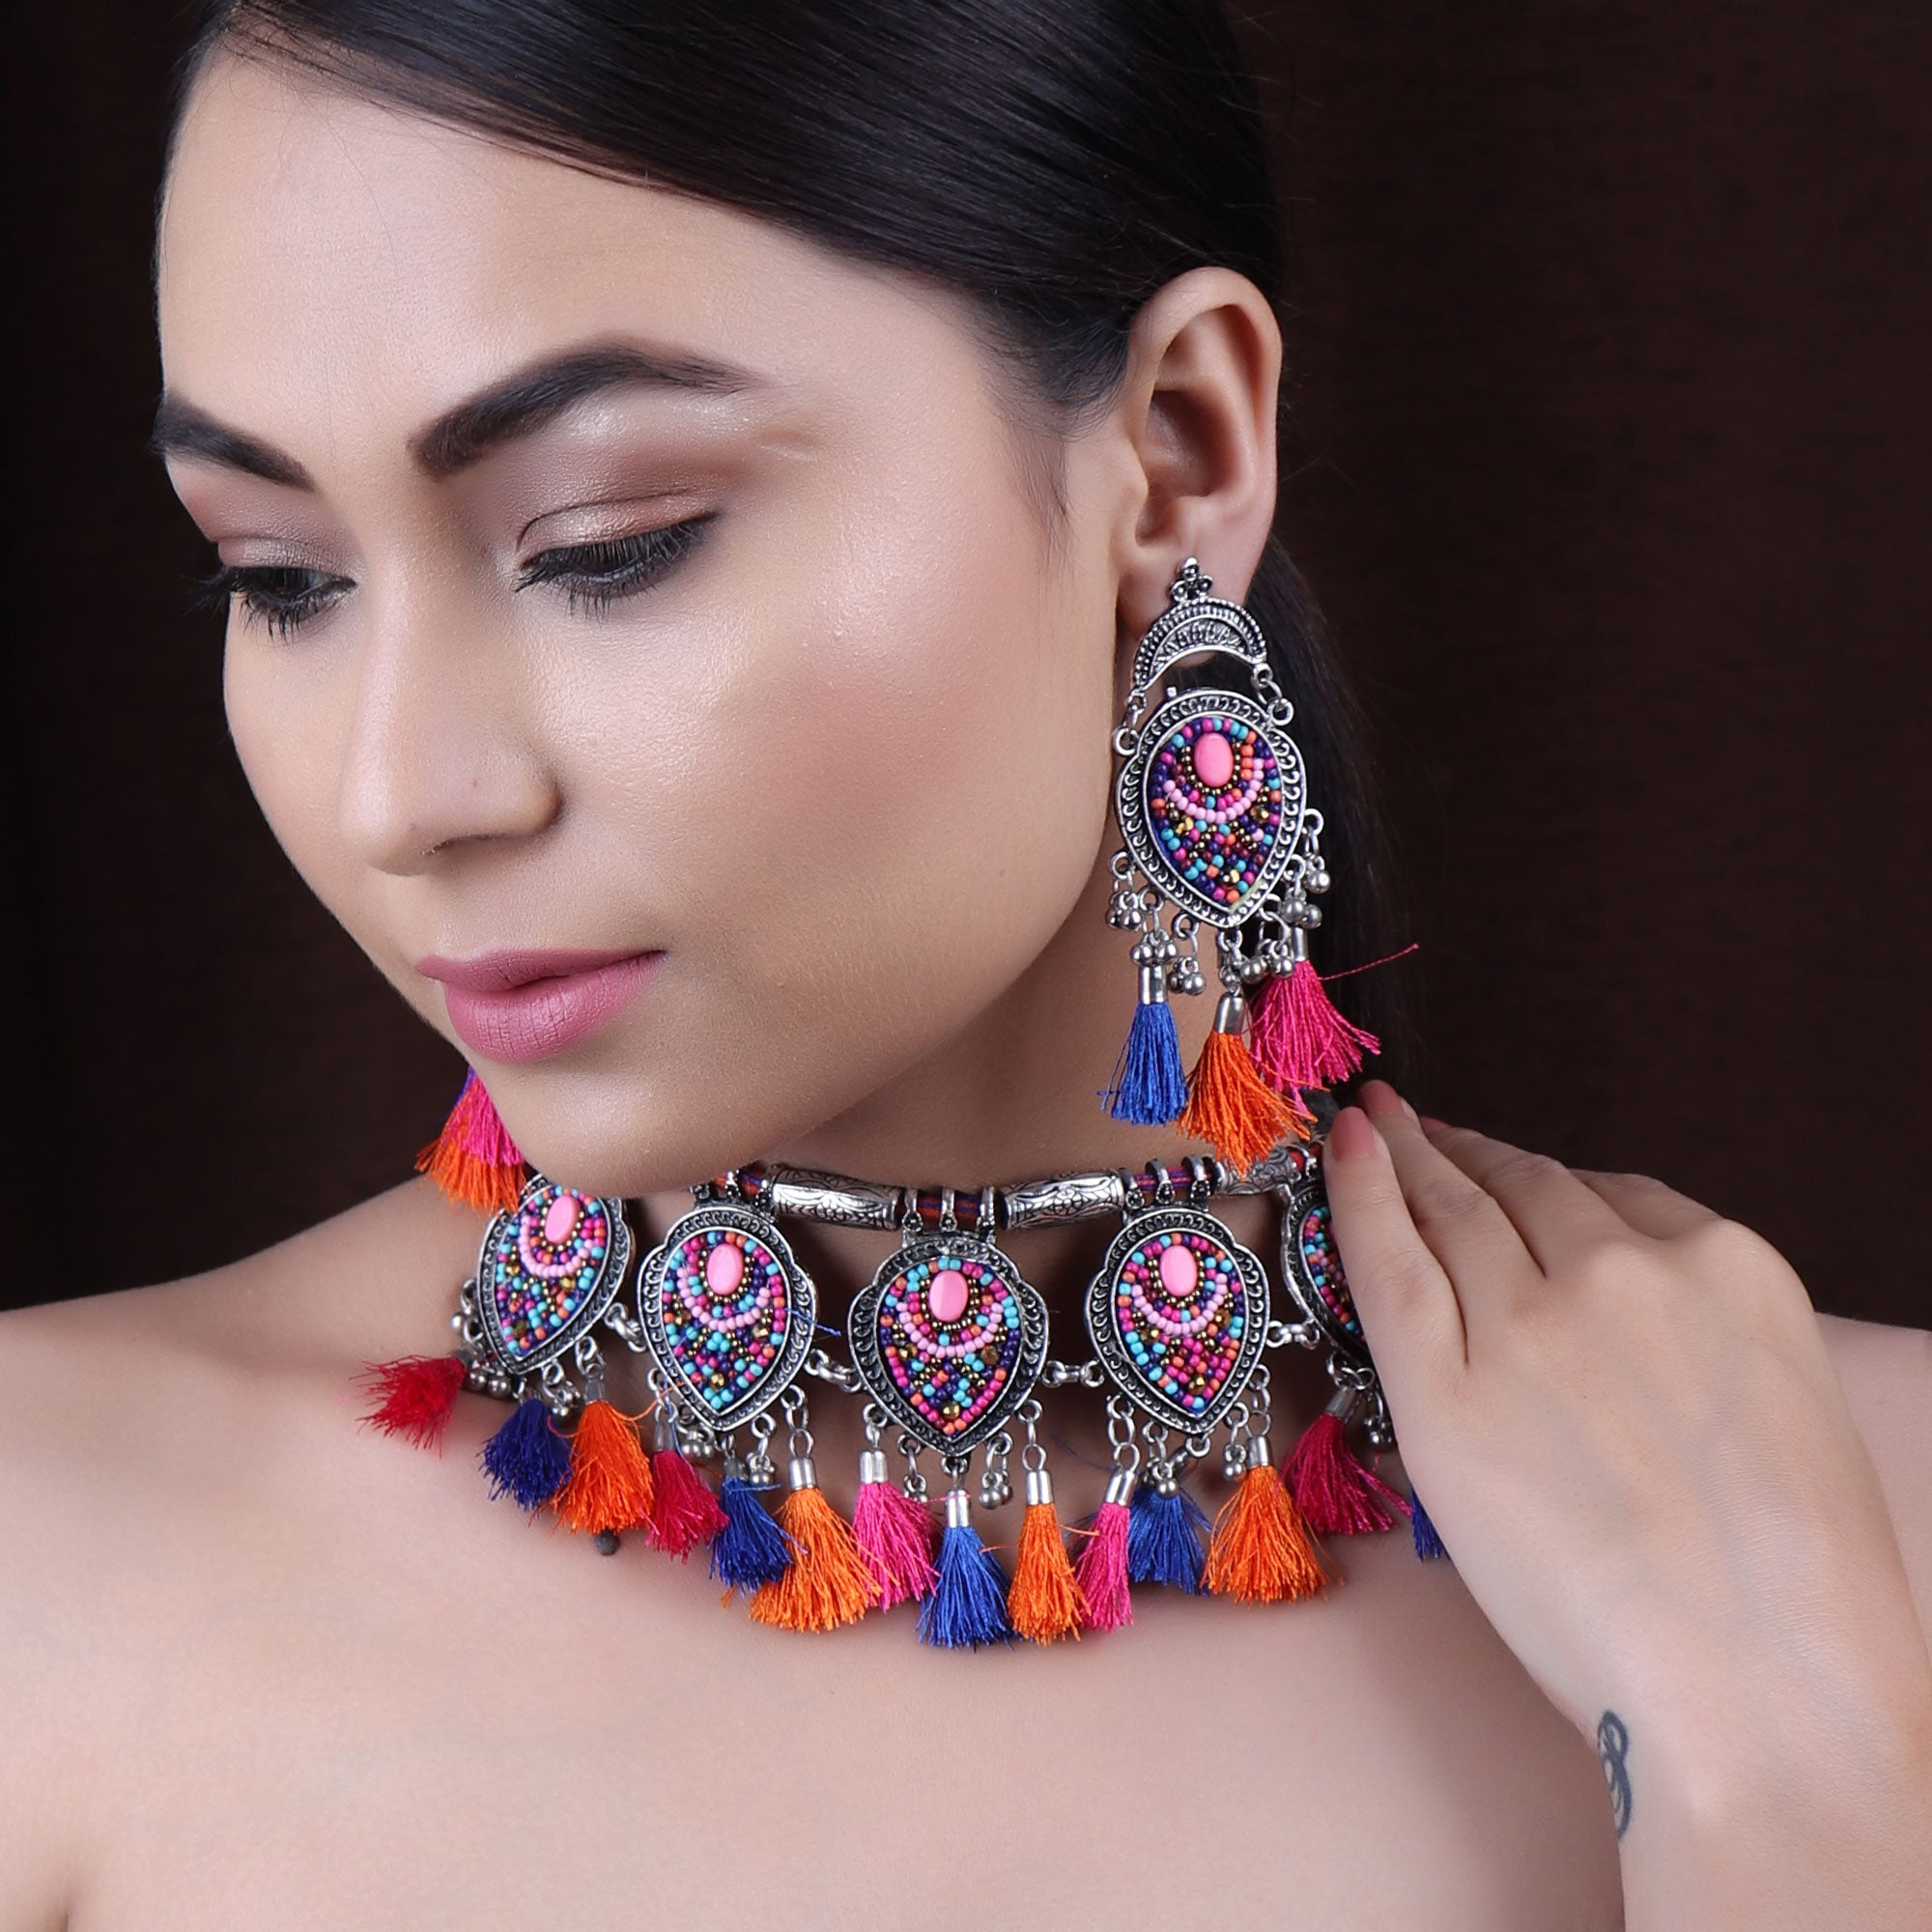 Necklace Set,The Fireflies Tassels Necklace Set in Multicolor - Cippele Multi Store